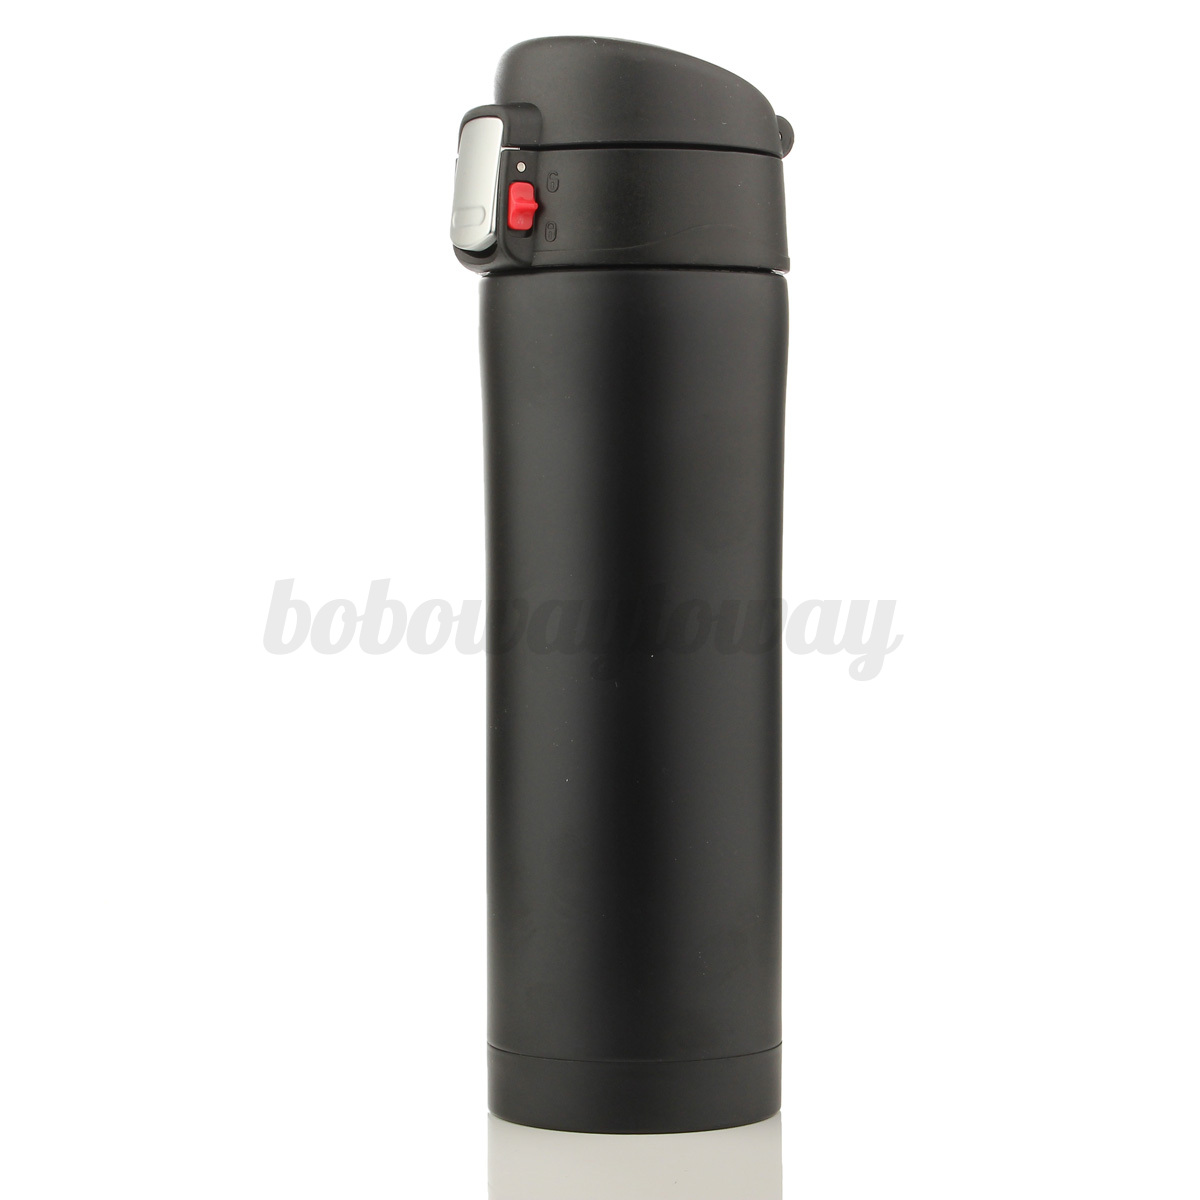 500ml thermobecher kaffee to go teebecher isolierbecher. Black Bedroom Furniture Sets. Home Design Ideas